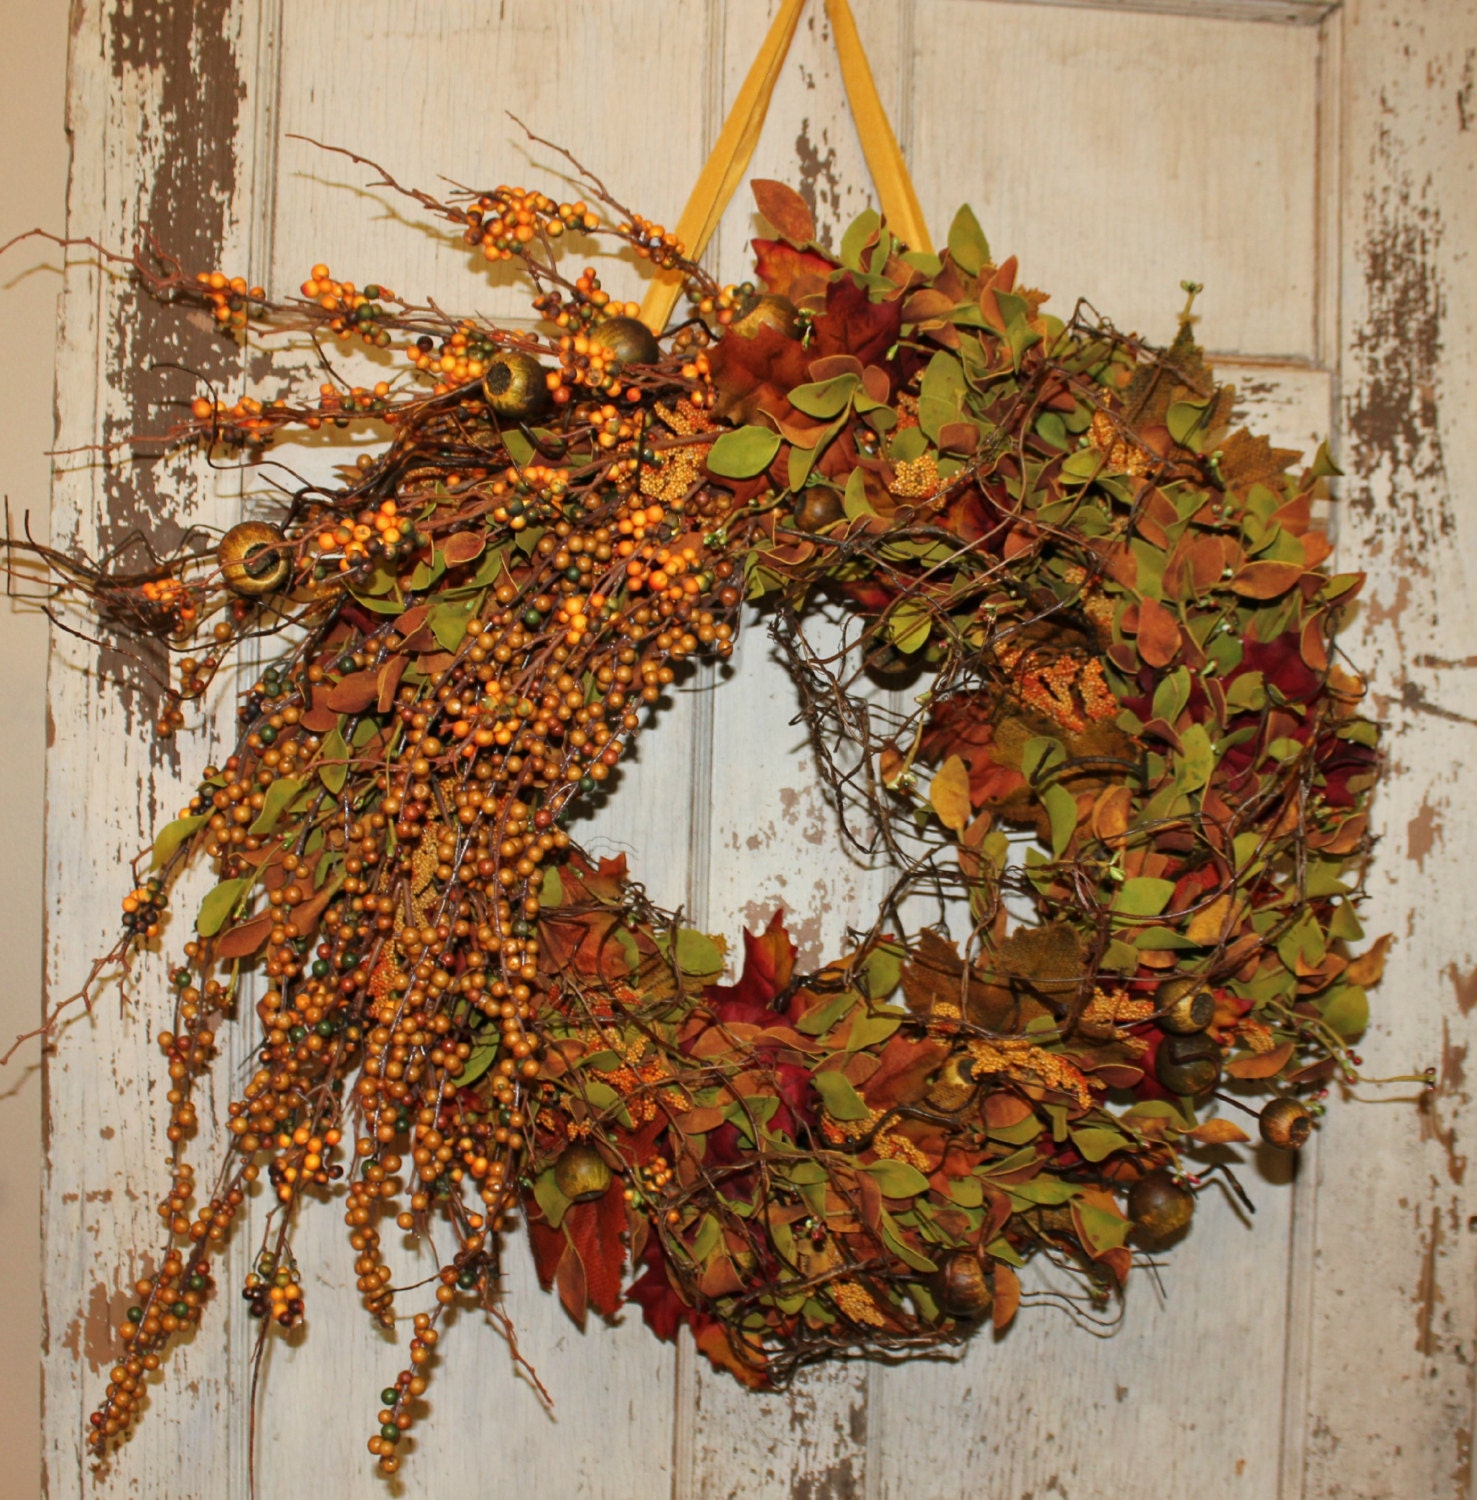 Summer fall wreath door wreath front door deco by beezdream Fall autumn door wreaths